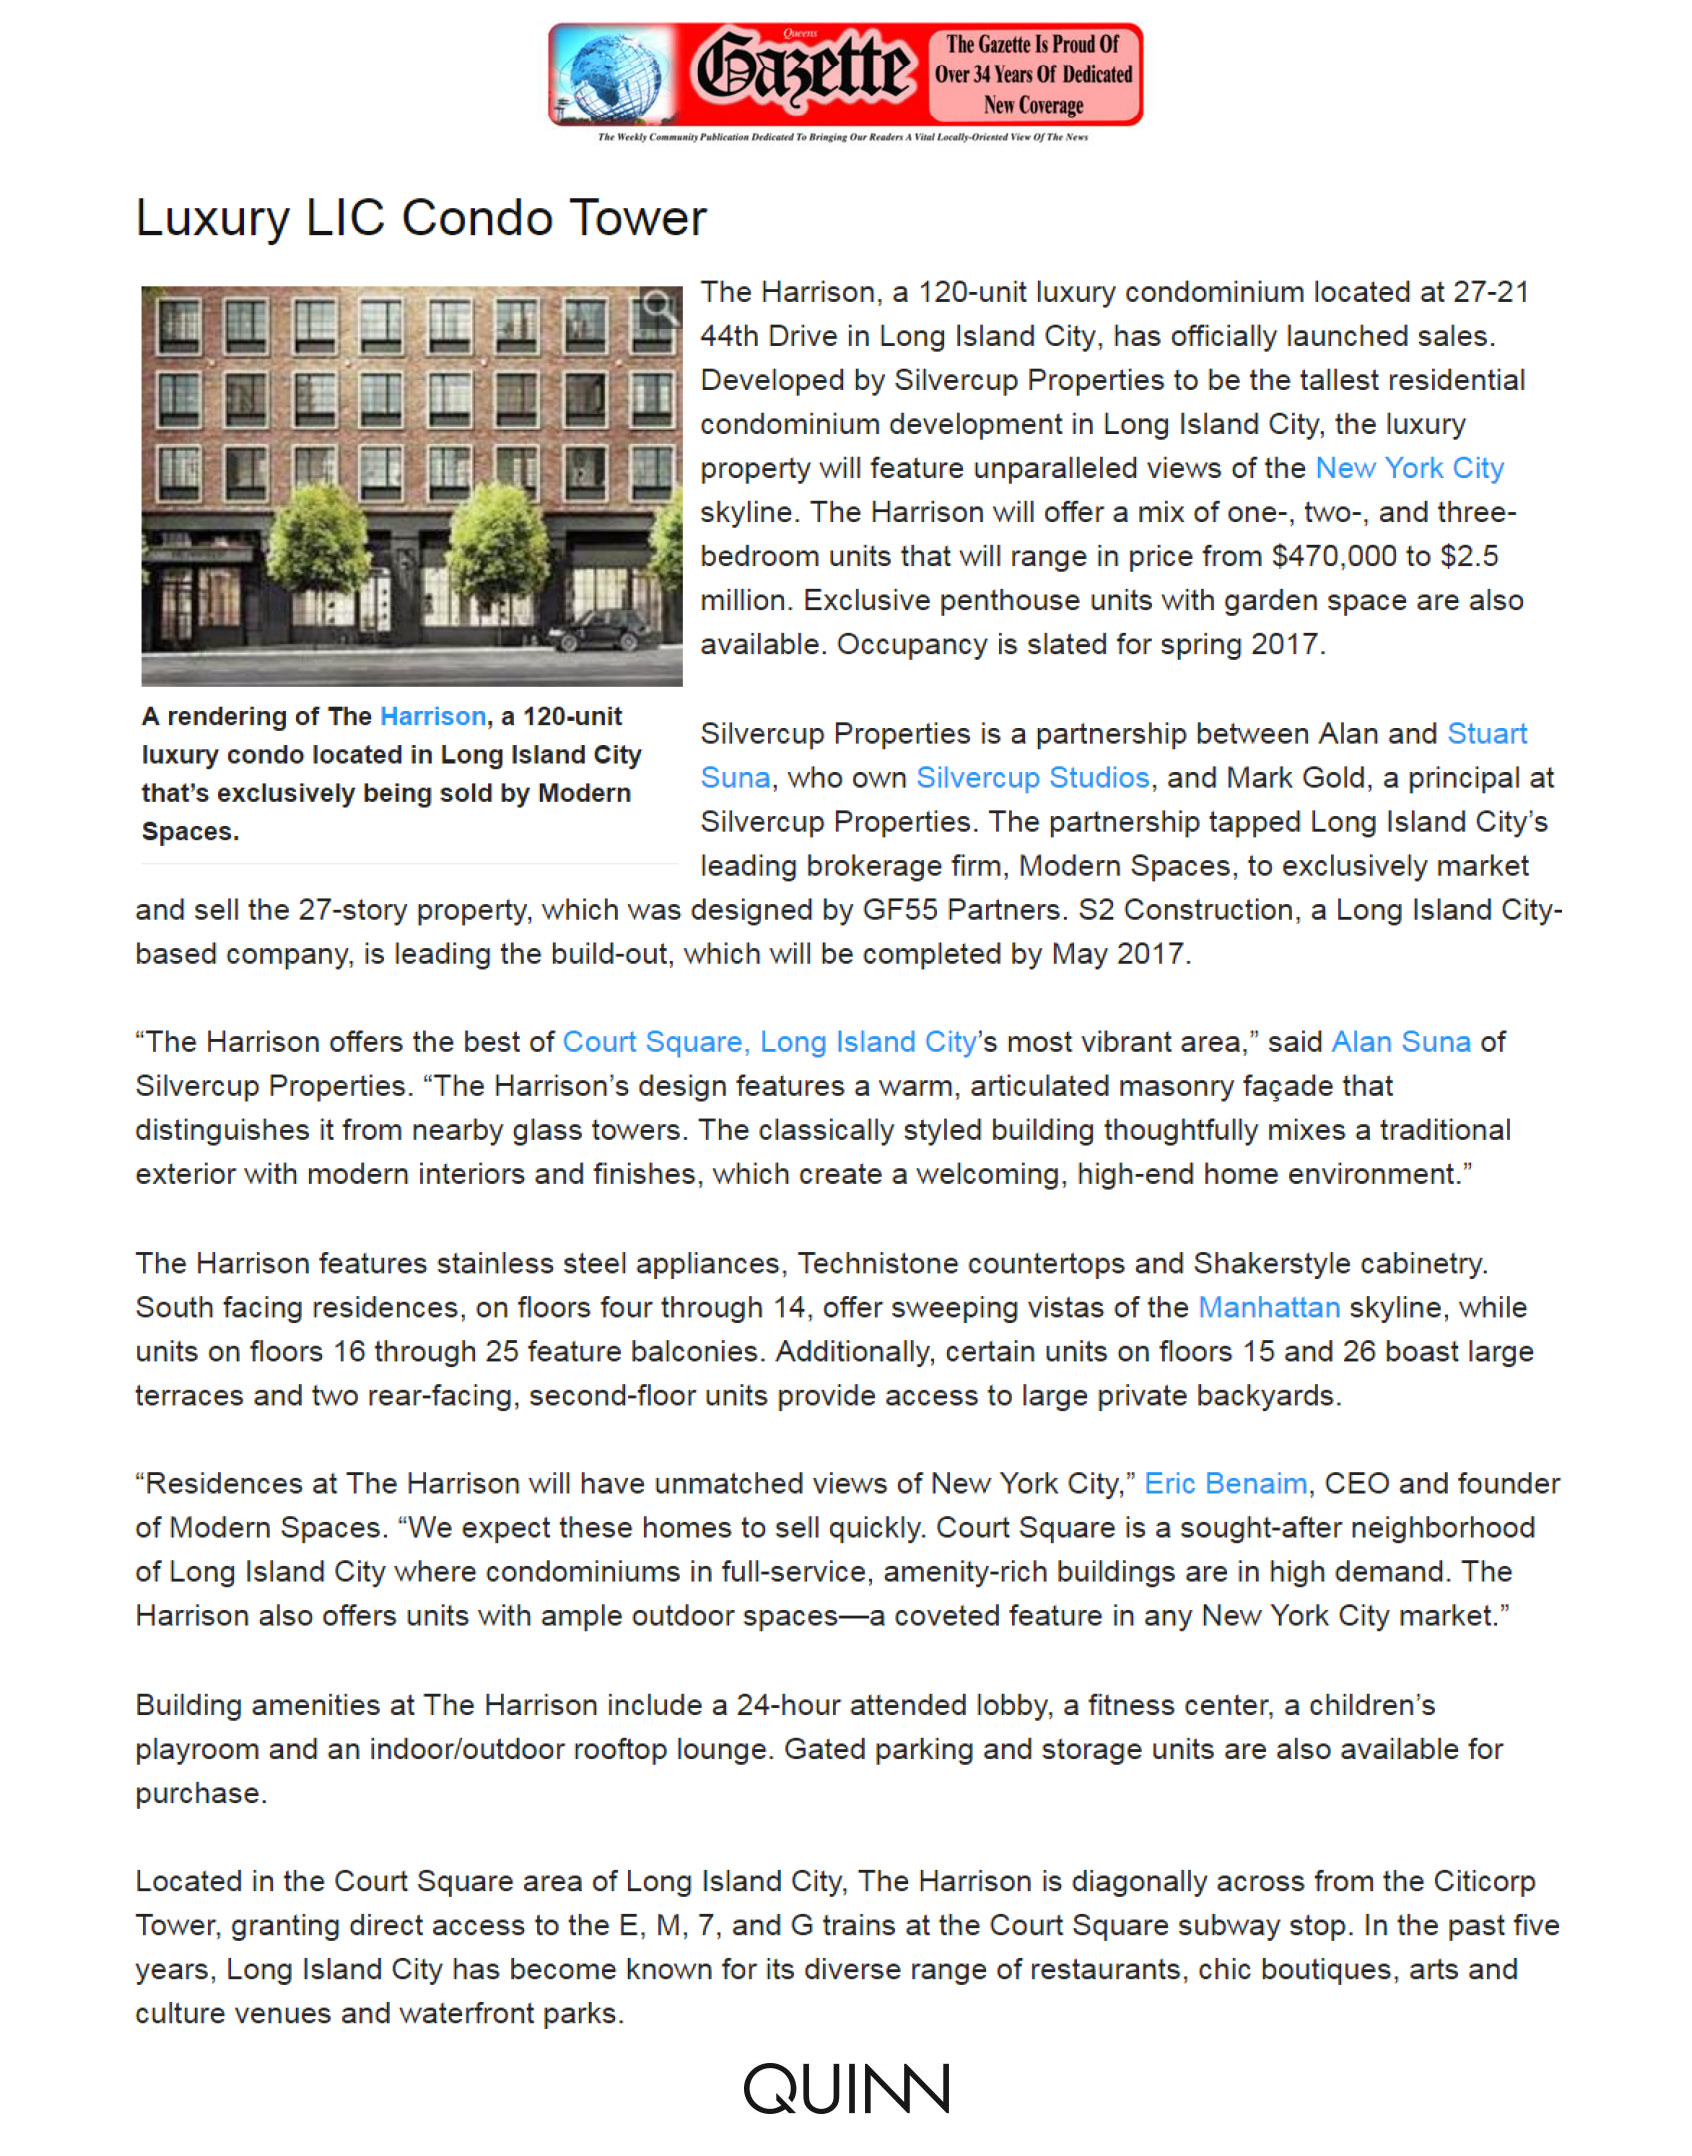 queens-gazette-luxury-lic-condo-tower-10-5-16-1